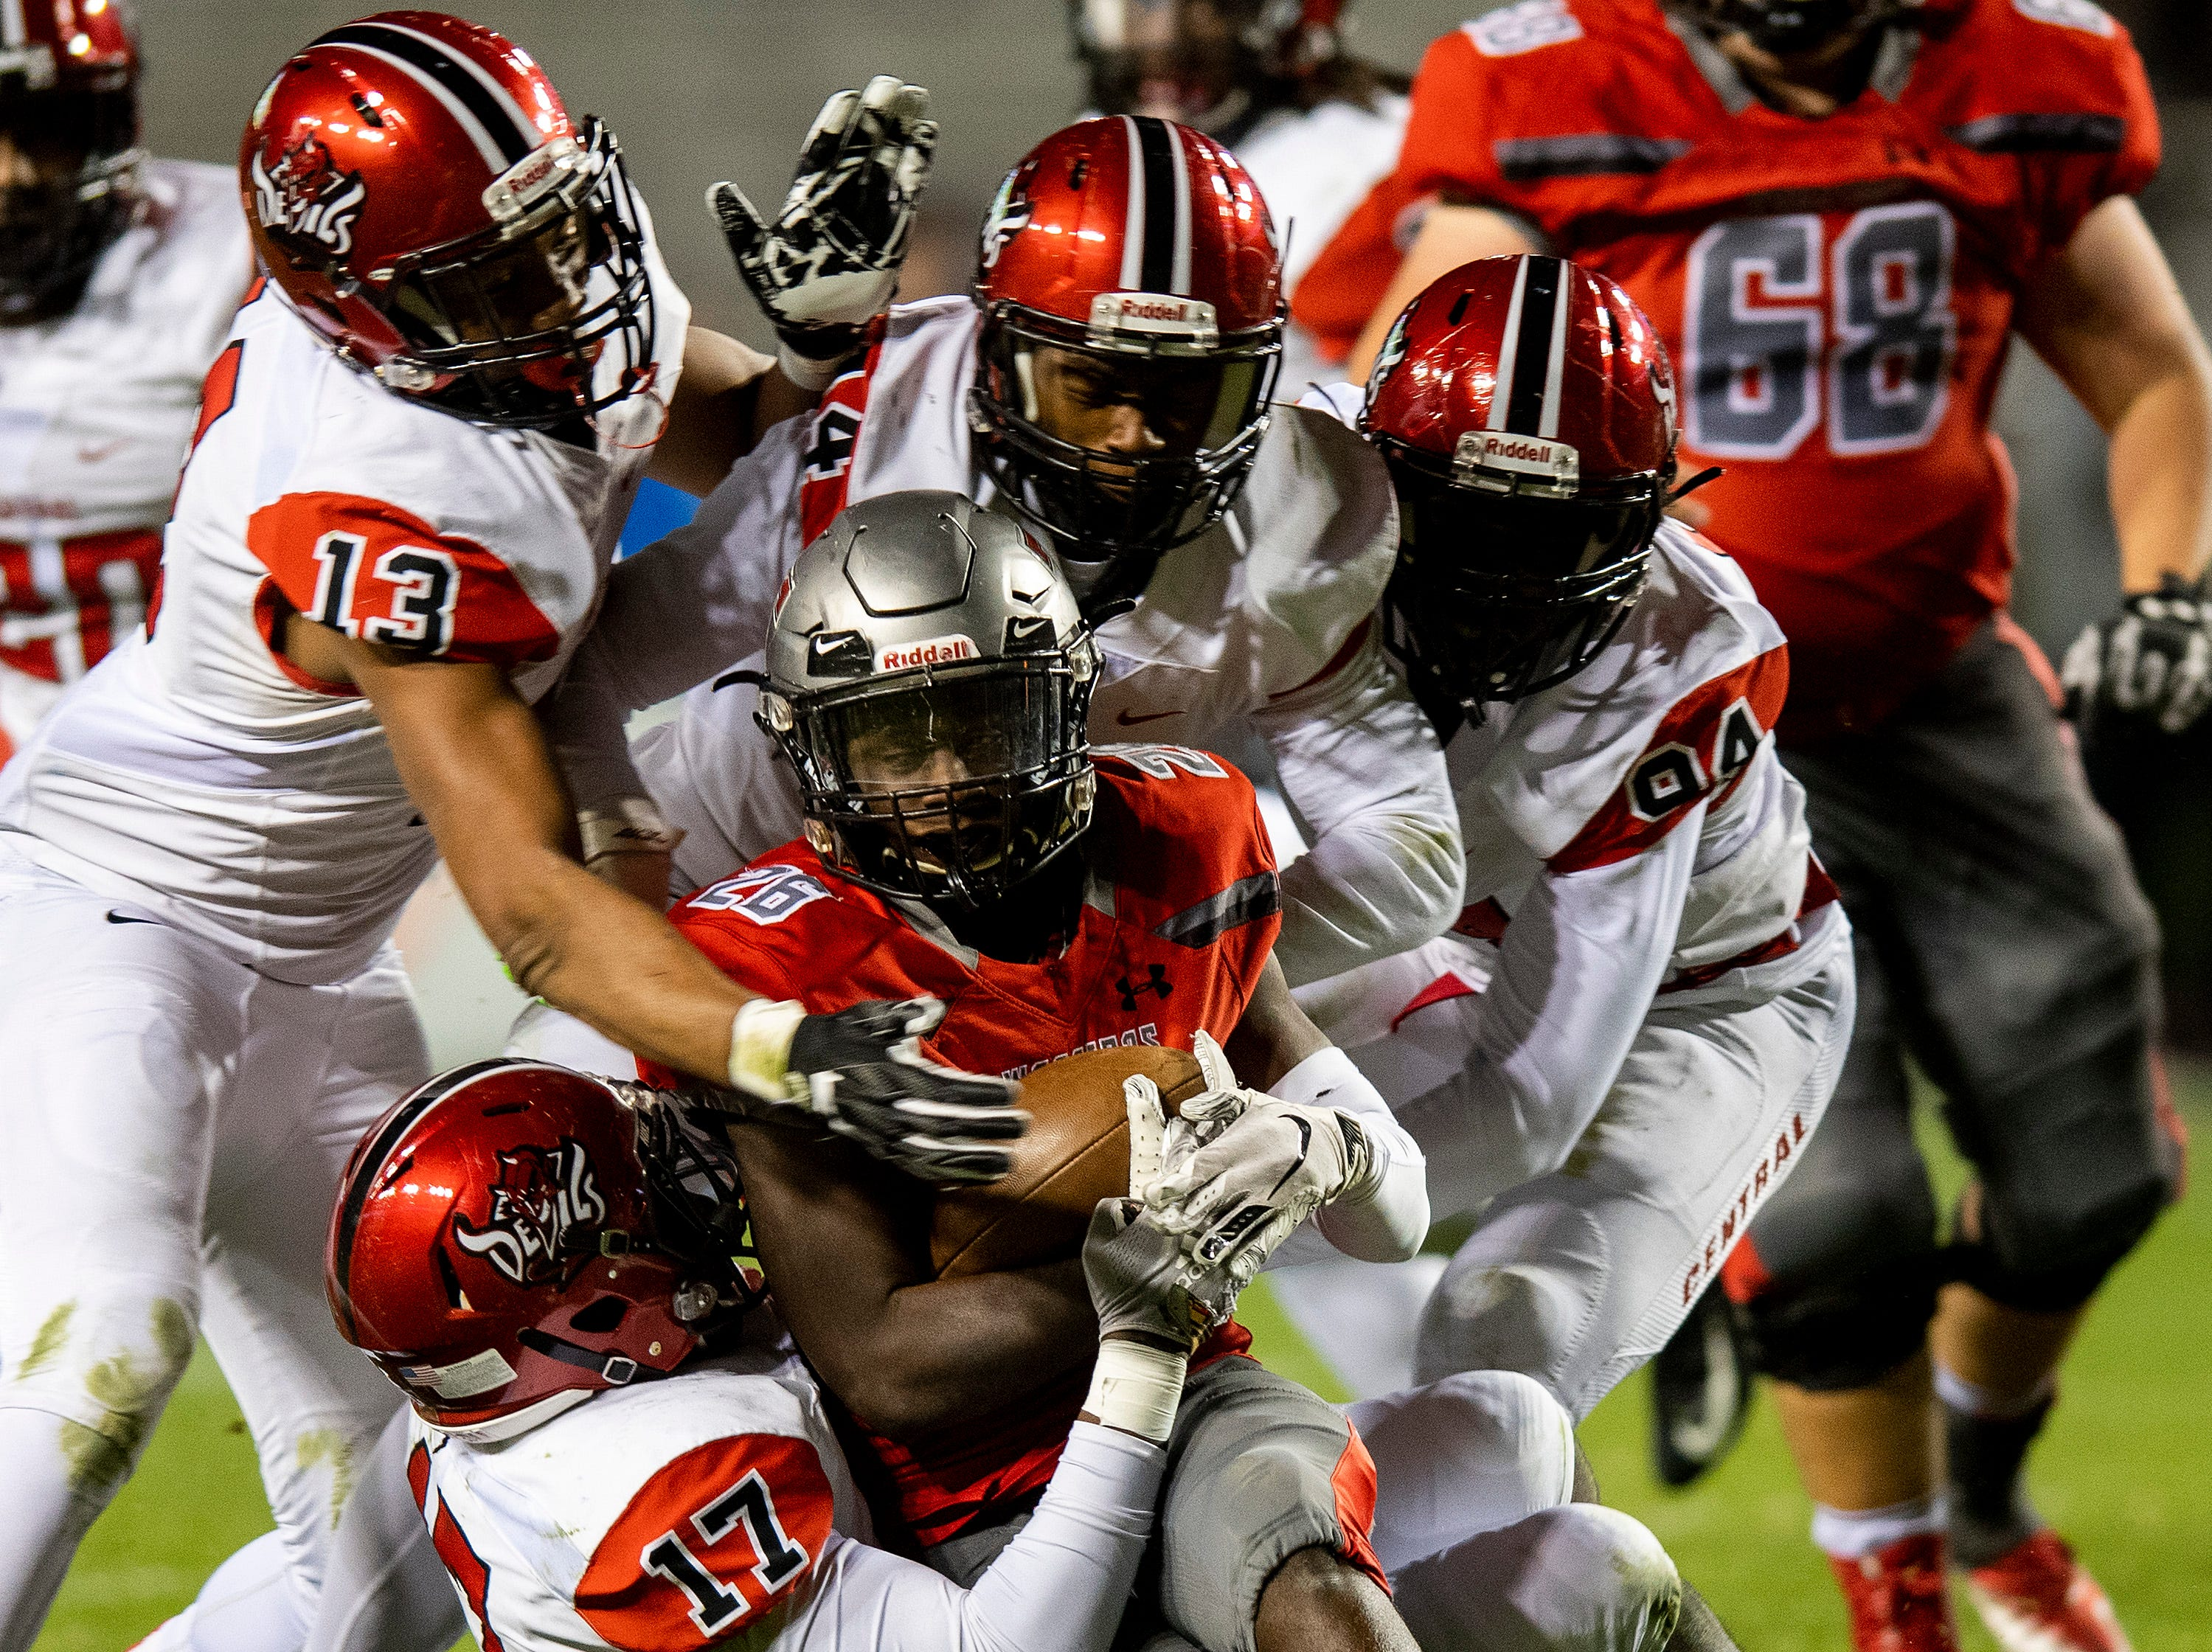 Thompson's Jarrett Crocket is swarmed under by Central-Phenix City defenders during the AHSAA Class 7A State Championship Football Game at Jordan Hare Stadium in Auburn, Ala., on Wednesday evening December 5, 2018.